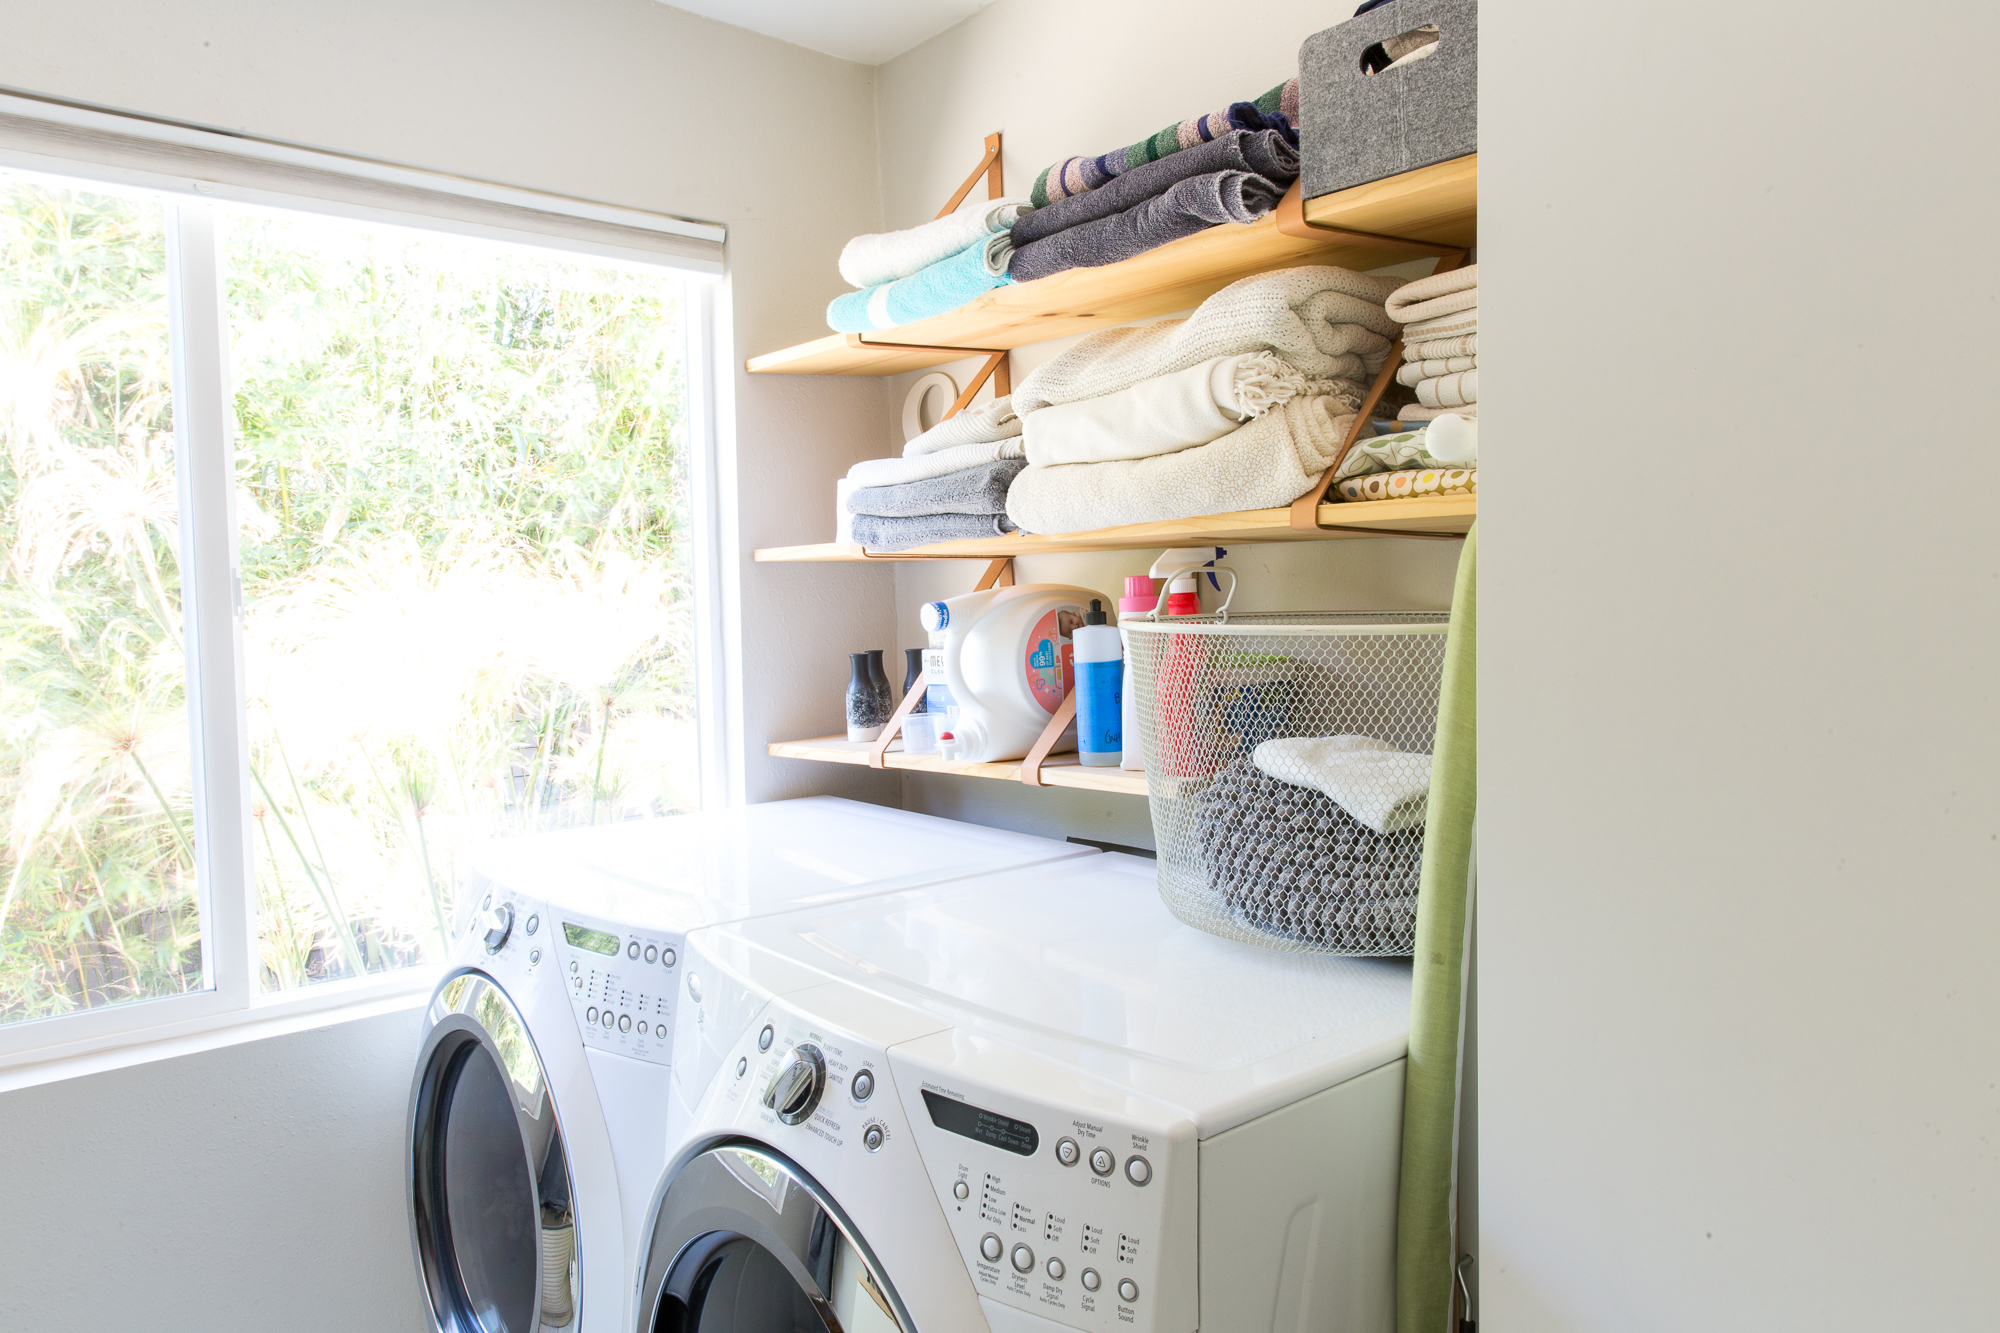 How To Make Your Clothes Smell Good In The Dryer 6 ways to get great smelling laundry without softener